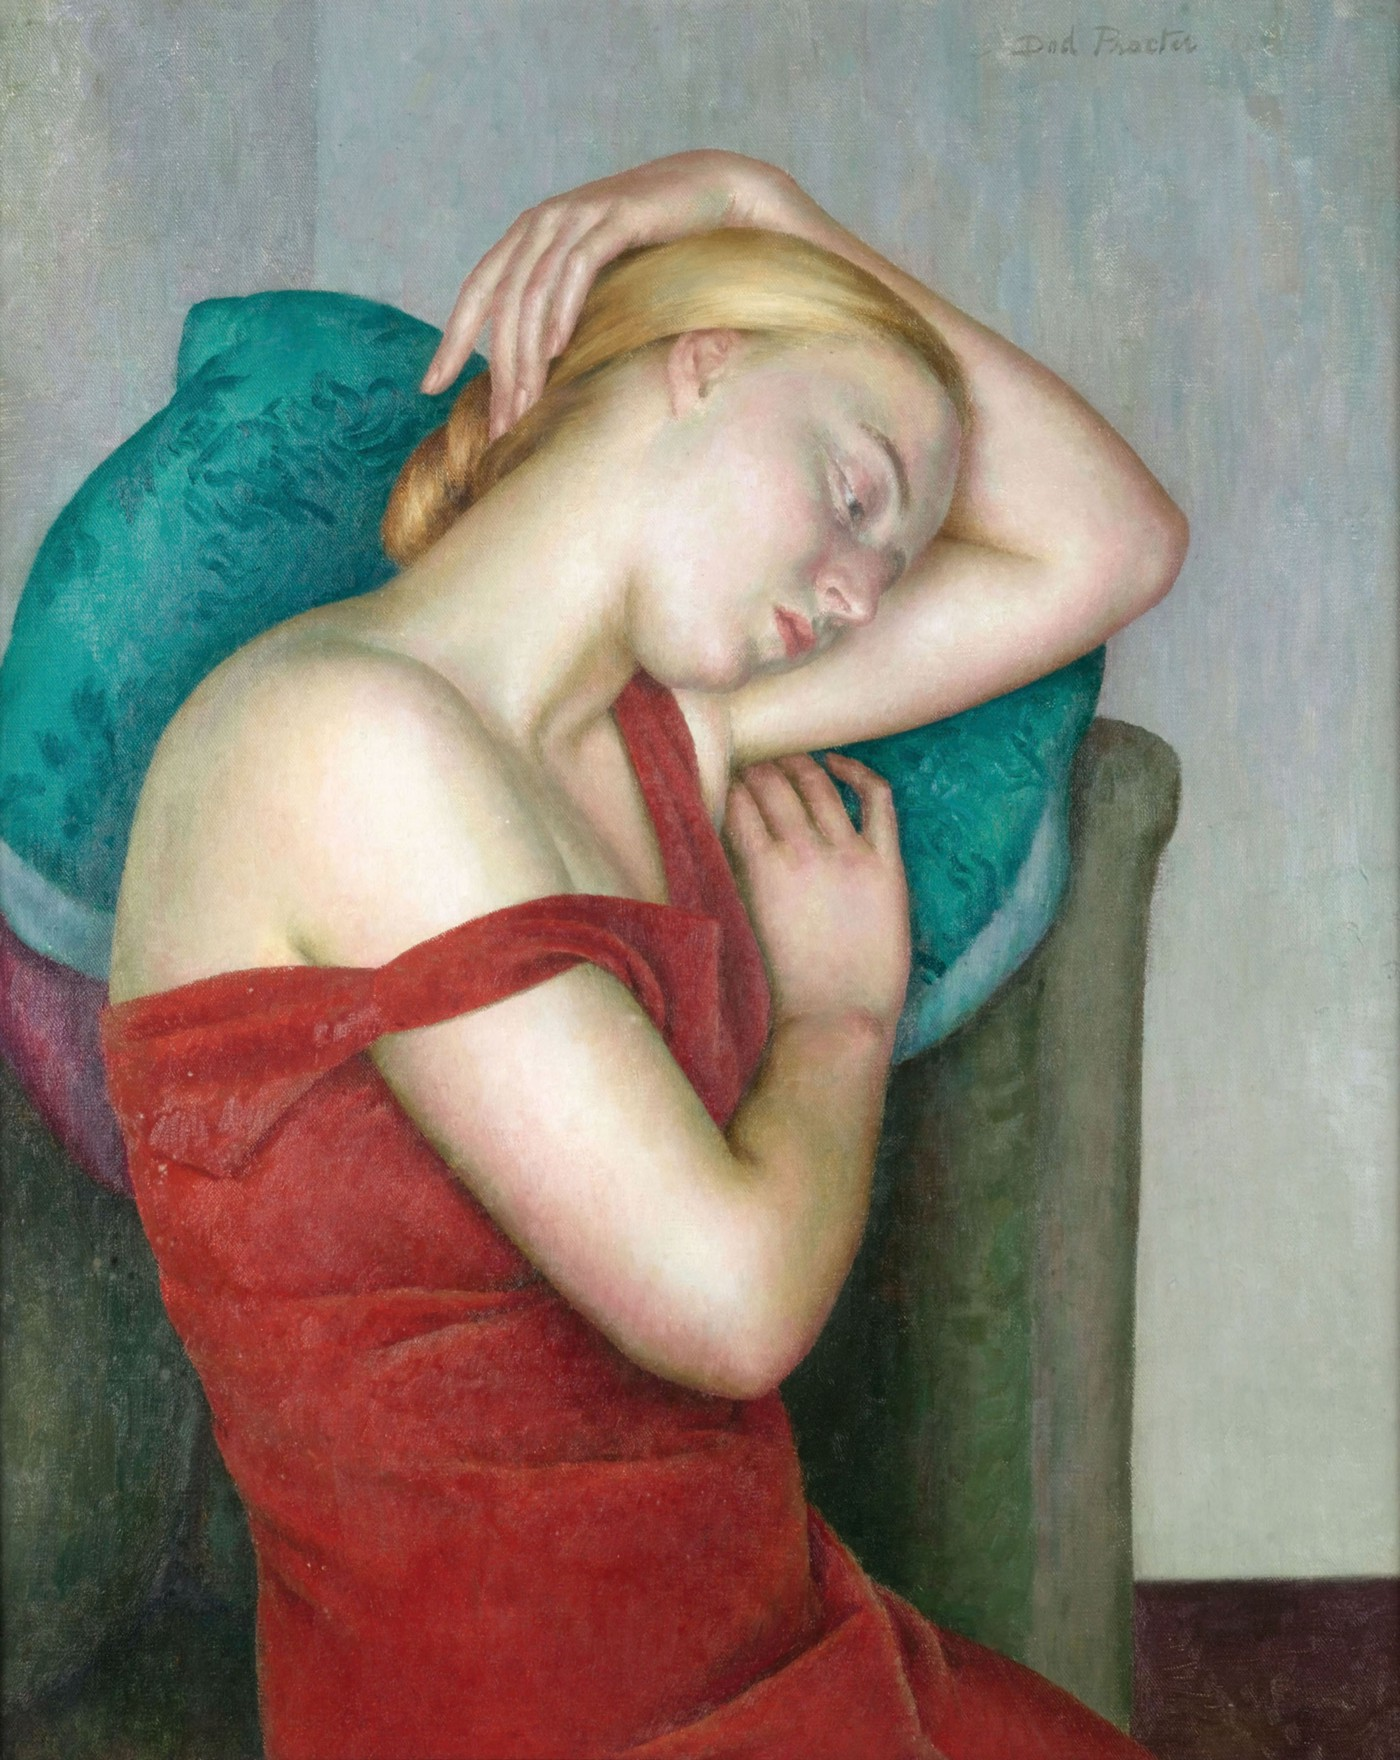 Painting of a white woman with blonde hair, wearing a red dress, she is sitting down and resting her head and arm on a turquoise pillow